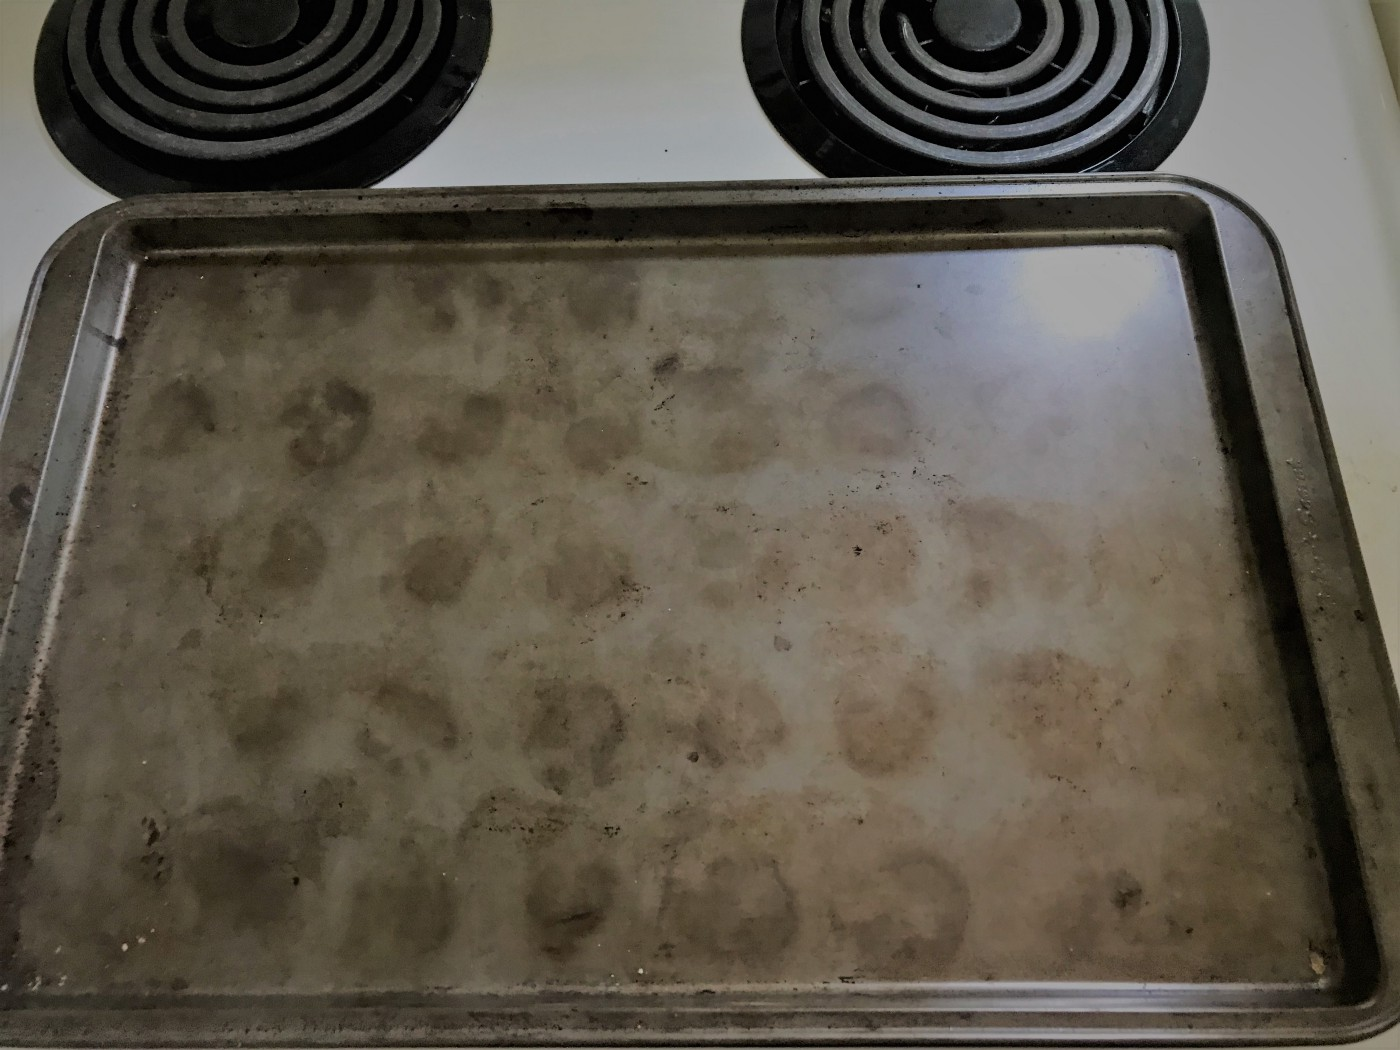 Old baking sheet with 40 dark circles etched into the surface (5 x 8)